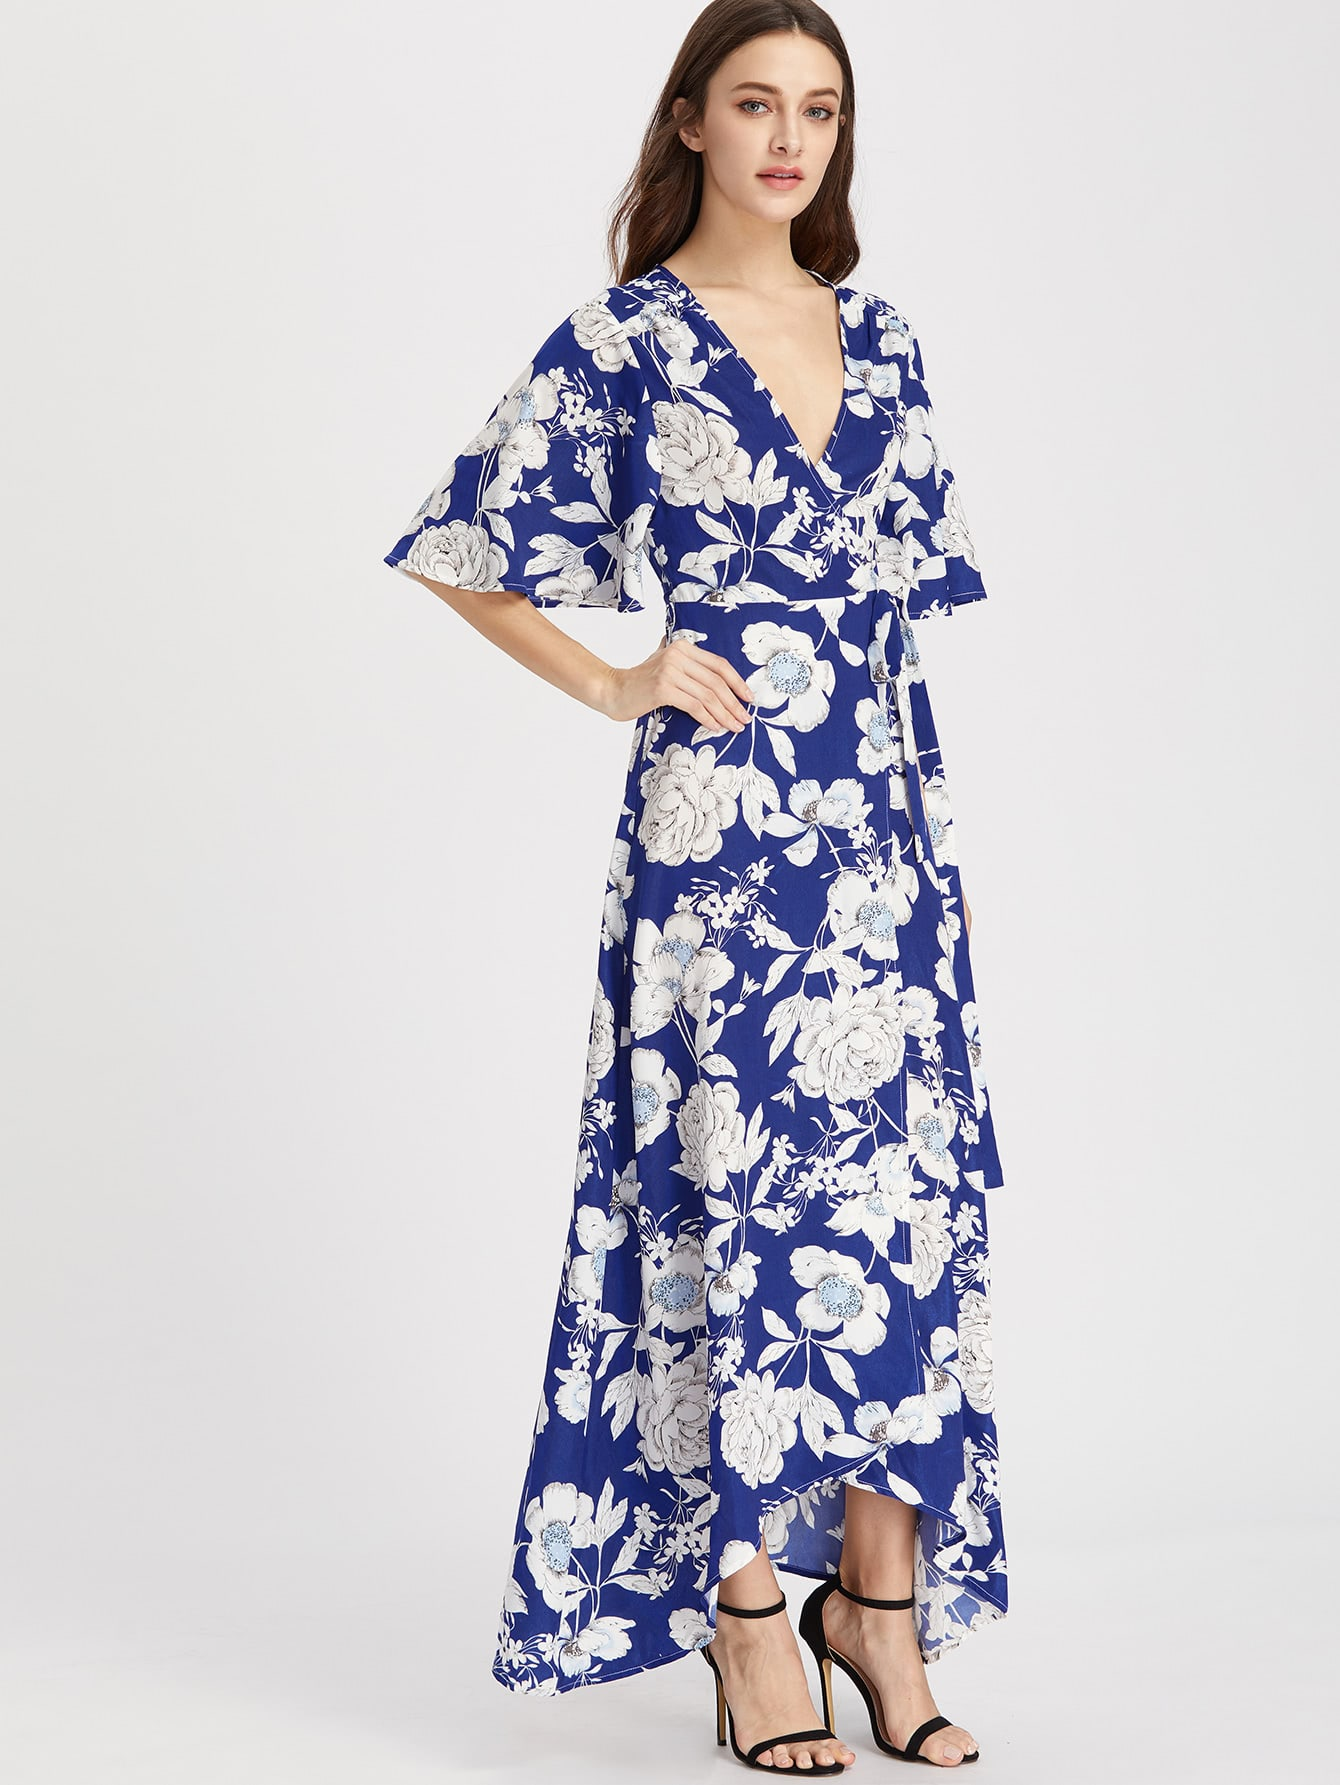 Flower Print Flutter Sleeve Surplice Wrap Dress аккумулятор oem 4 samsung 18650 2600mah